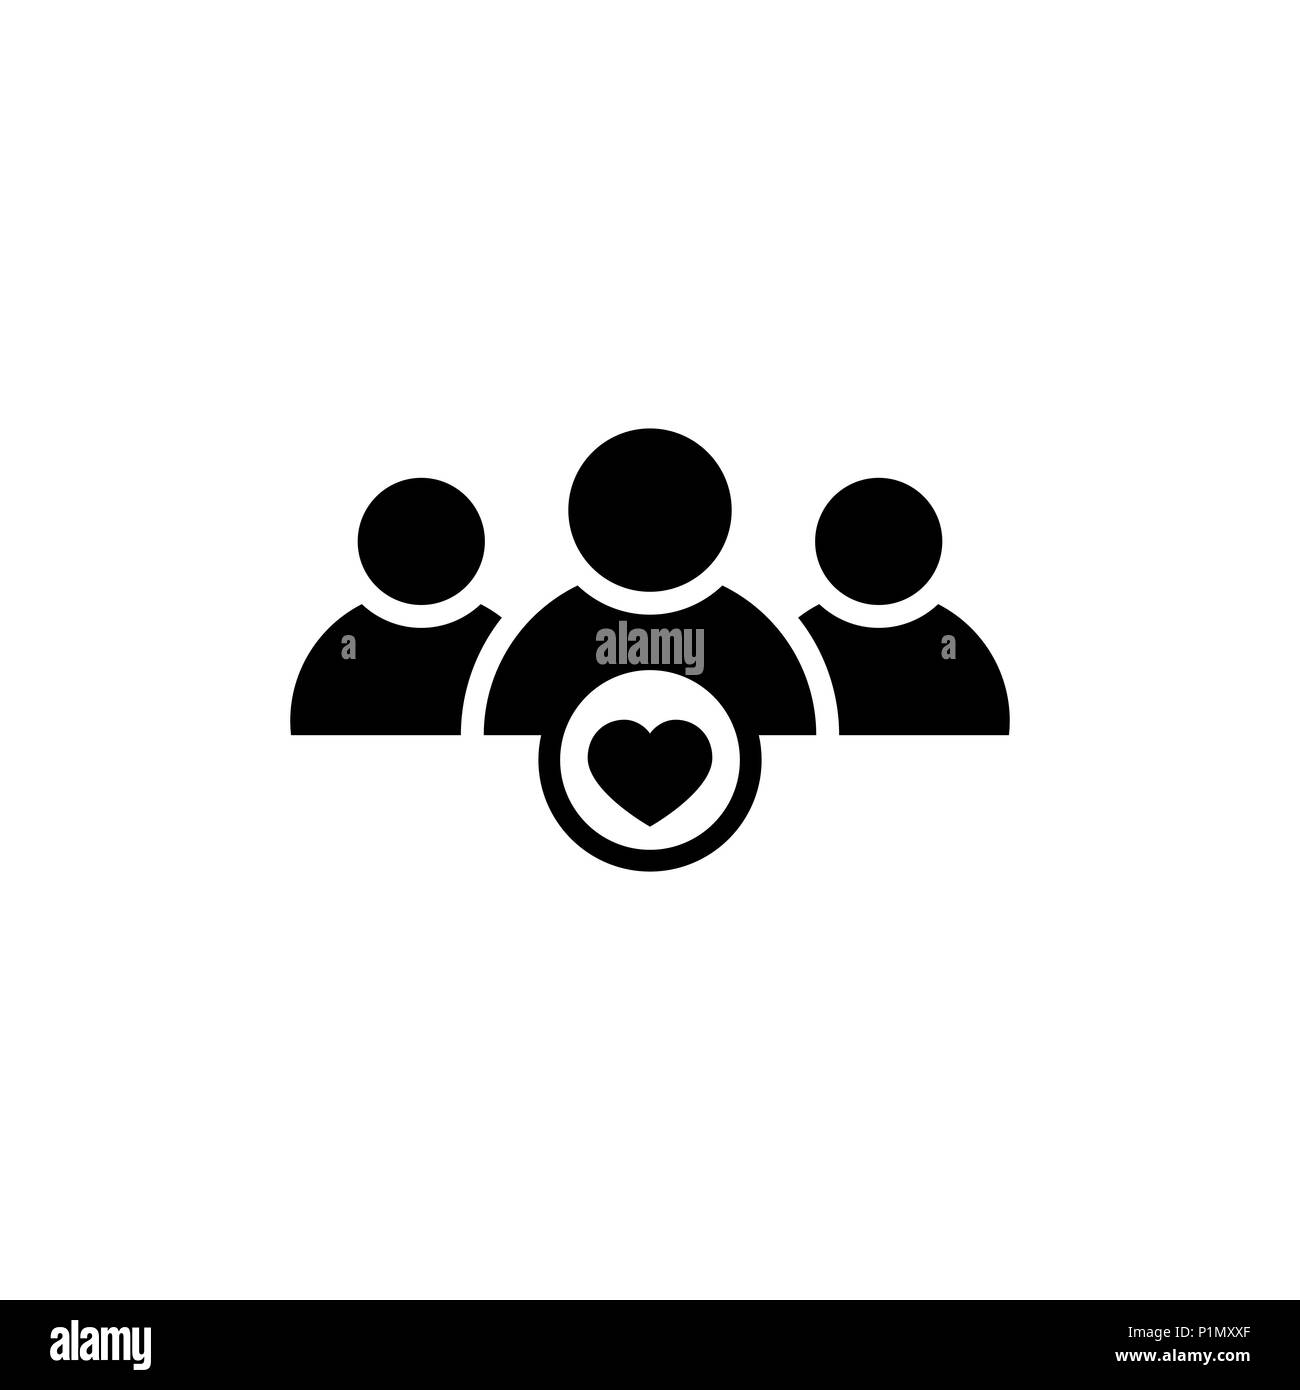 User group icon with heart shape - Stock Image